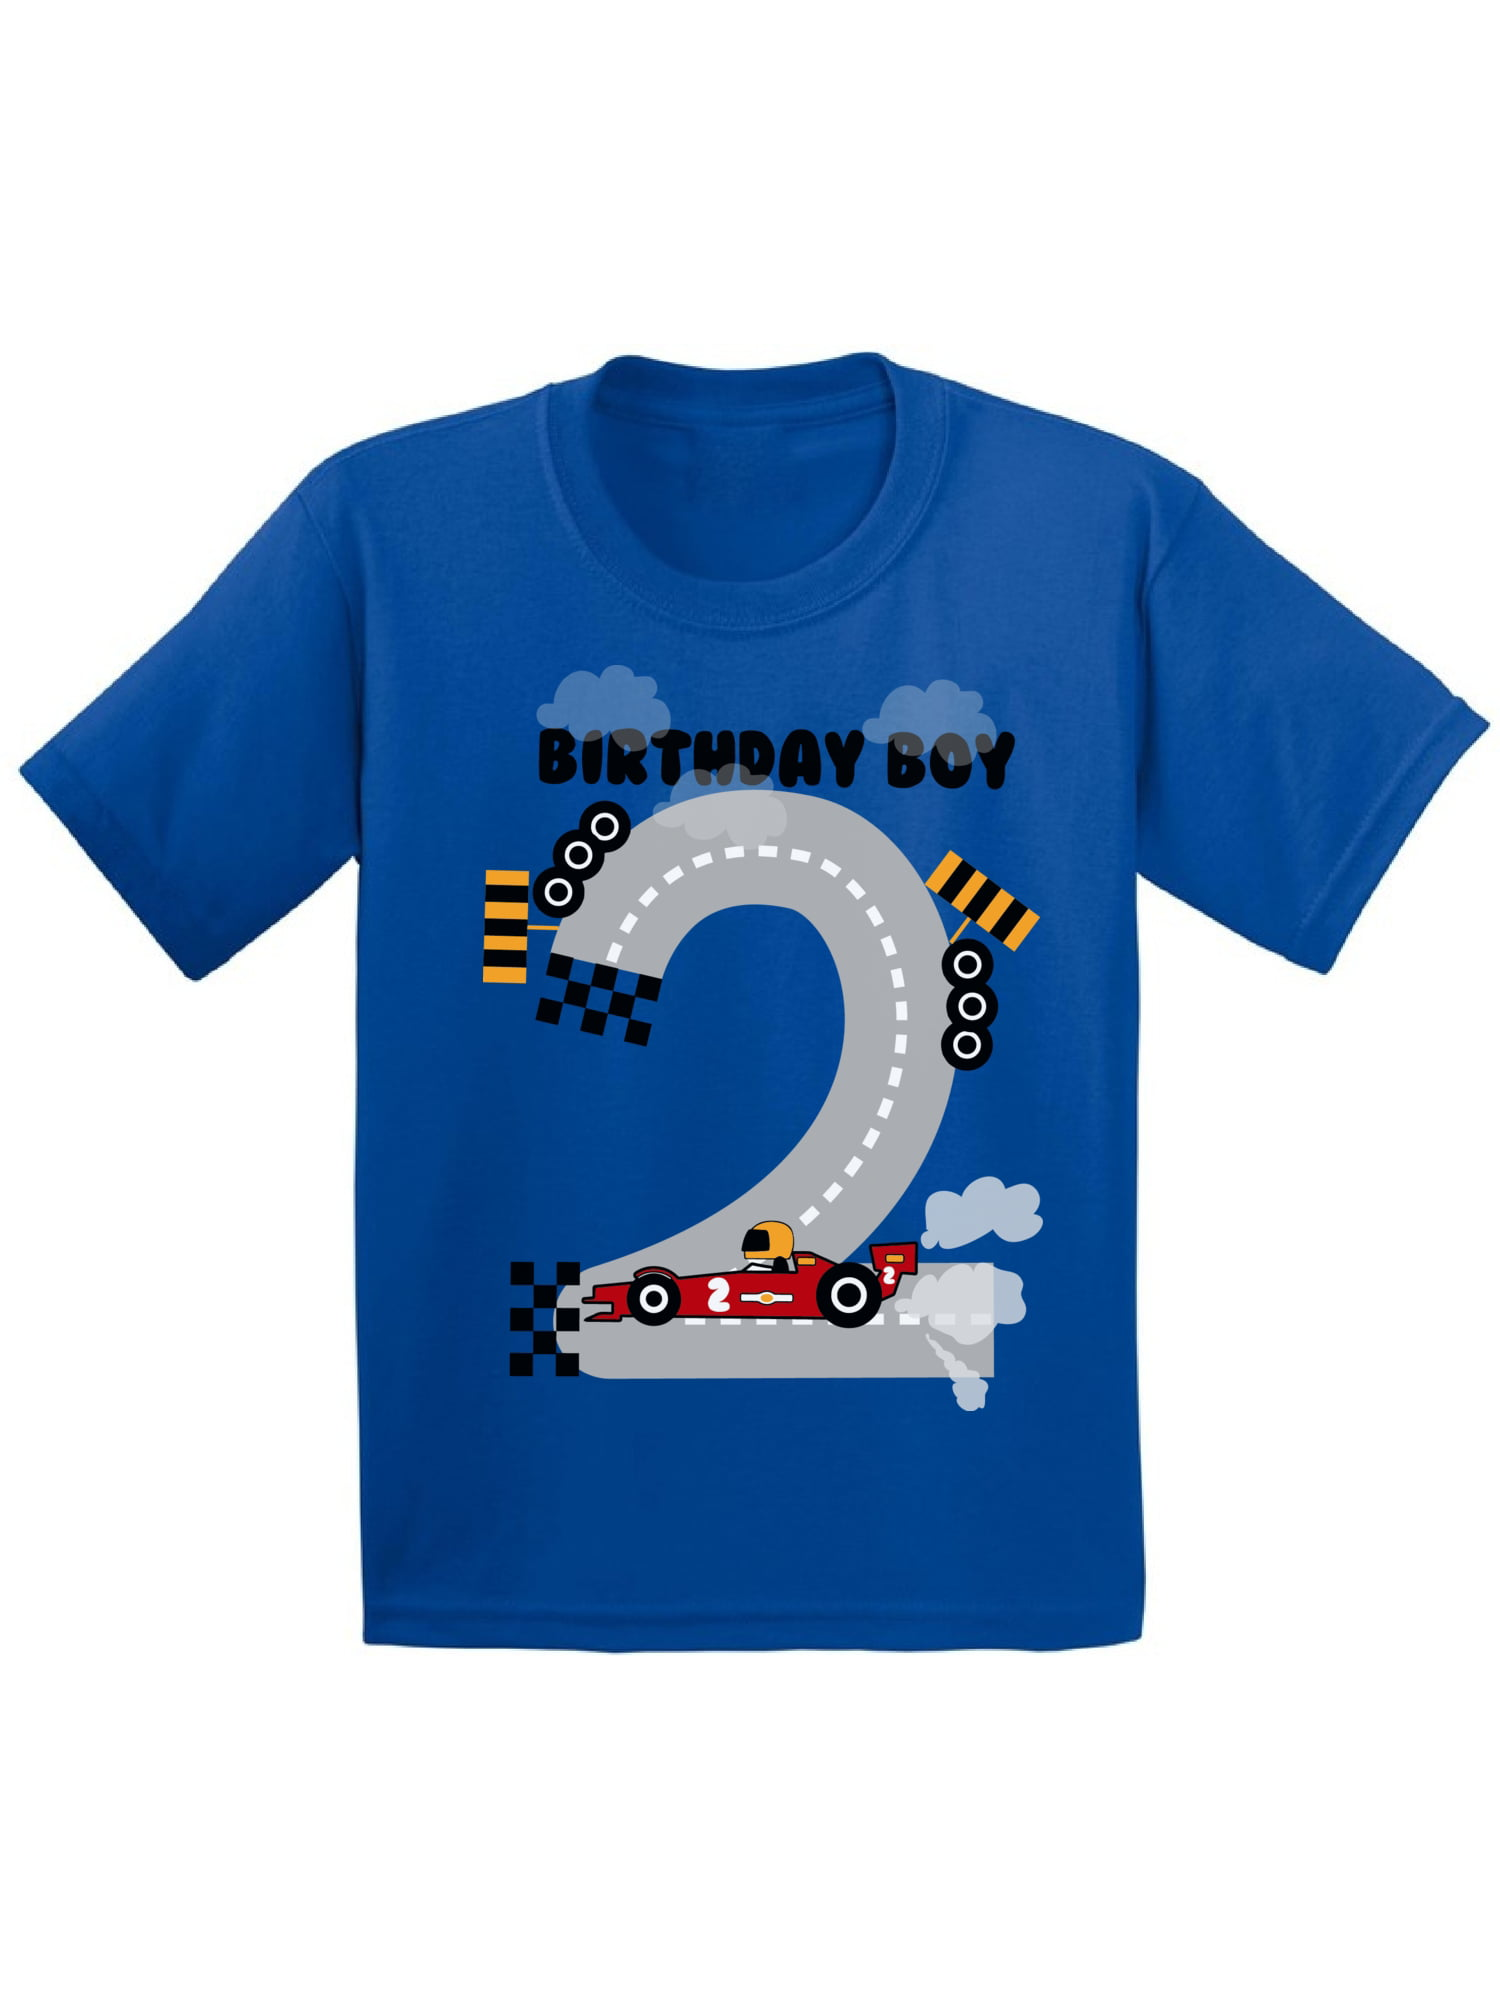 Awkward Styles Birthday Boy Race Car Toddler Shirt Party For Boys Funny Gifts 2 Year Old 2nd T Second